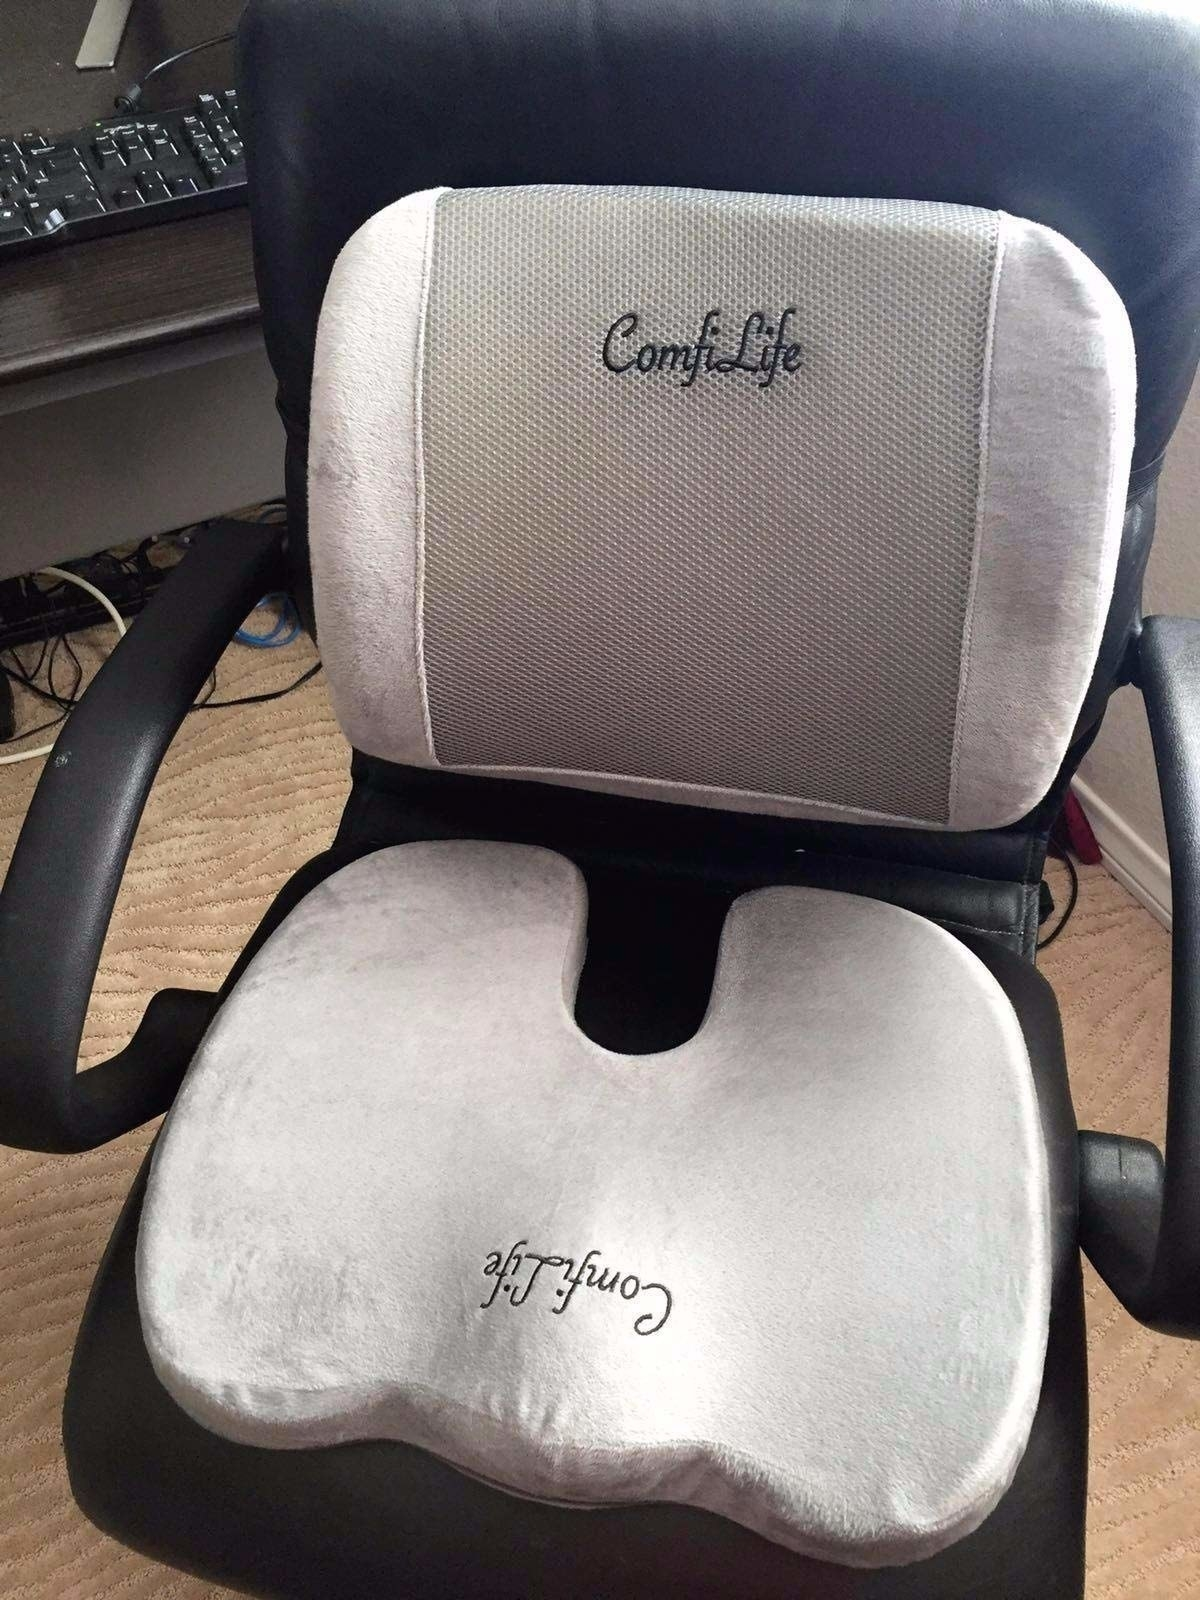 Reviewer photo of lumbar pillow and seat cushion on office chair